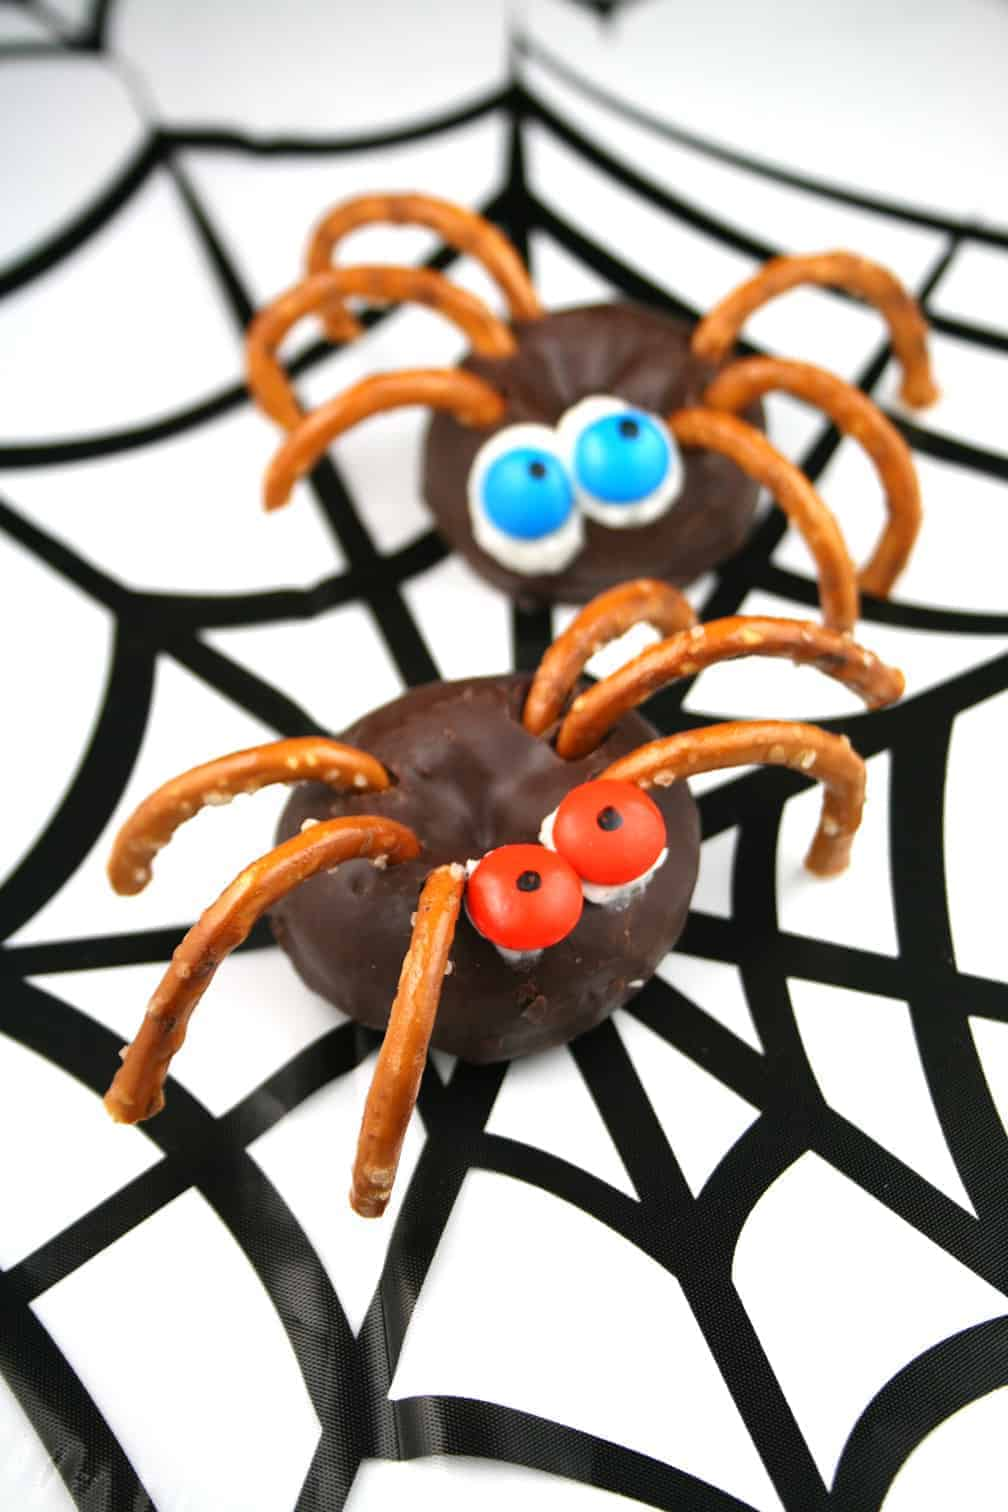 heres a halloween treat the kids can make my 9 year old son and 12 year old daughter made these halloween spider donuts so easy and fun to eat - Halloween Spider